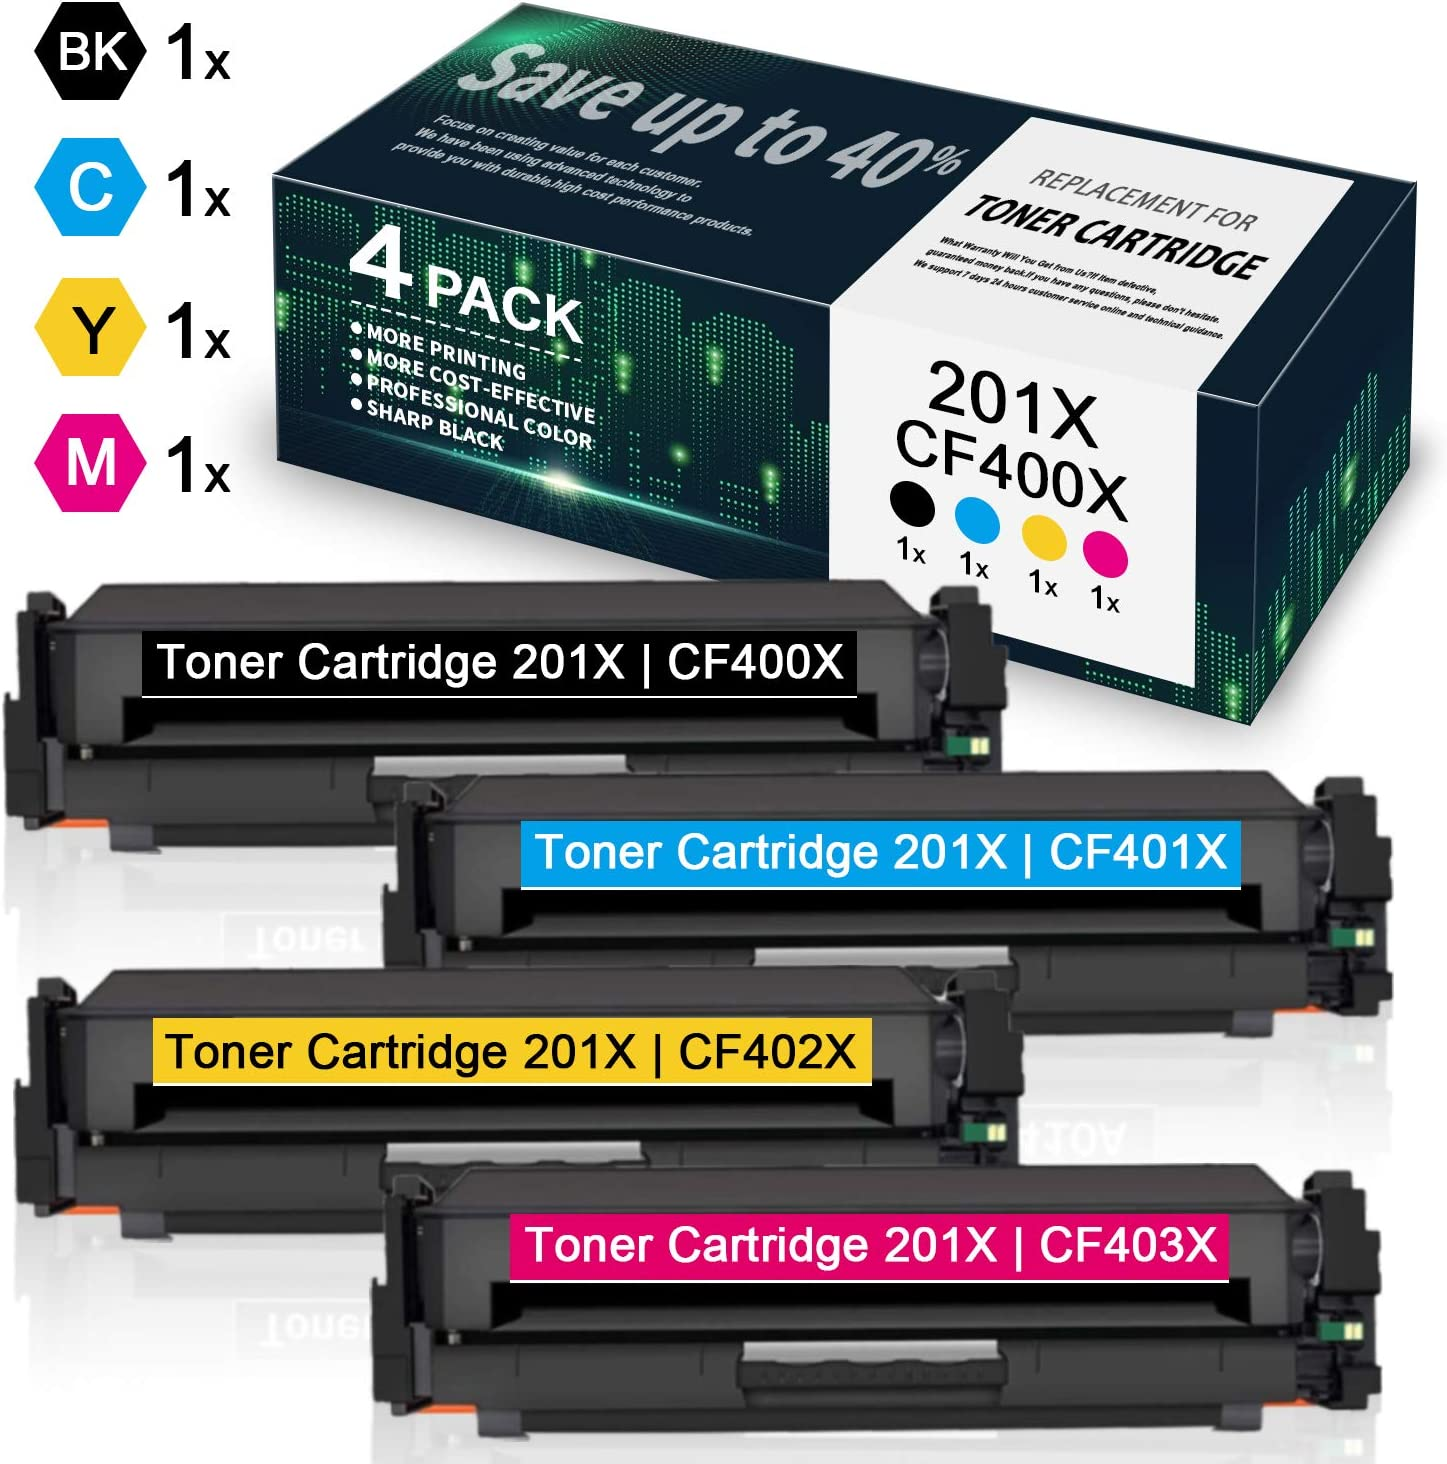 1BK//1C//1Y//1M by VaserInk High Yield 4 Pack 201X CF400X CF401X CF402X CF403X Toner Cartridge Replacement for HP Color Laserjet Pro MFP M277n M277dw M277c6 M274n Pro M252dw M252n